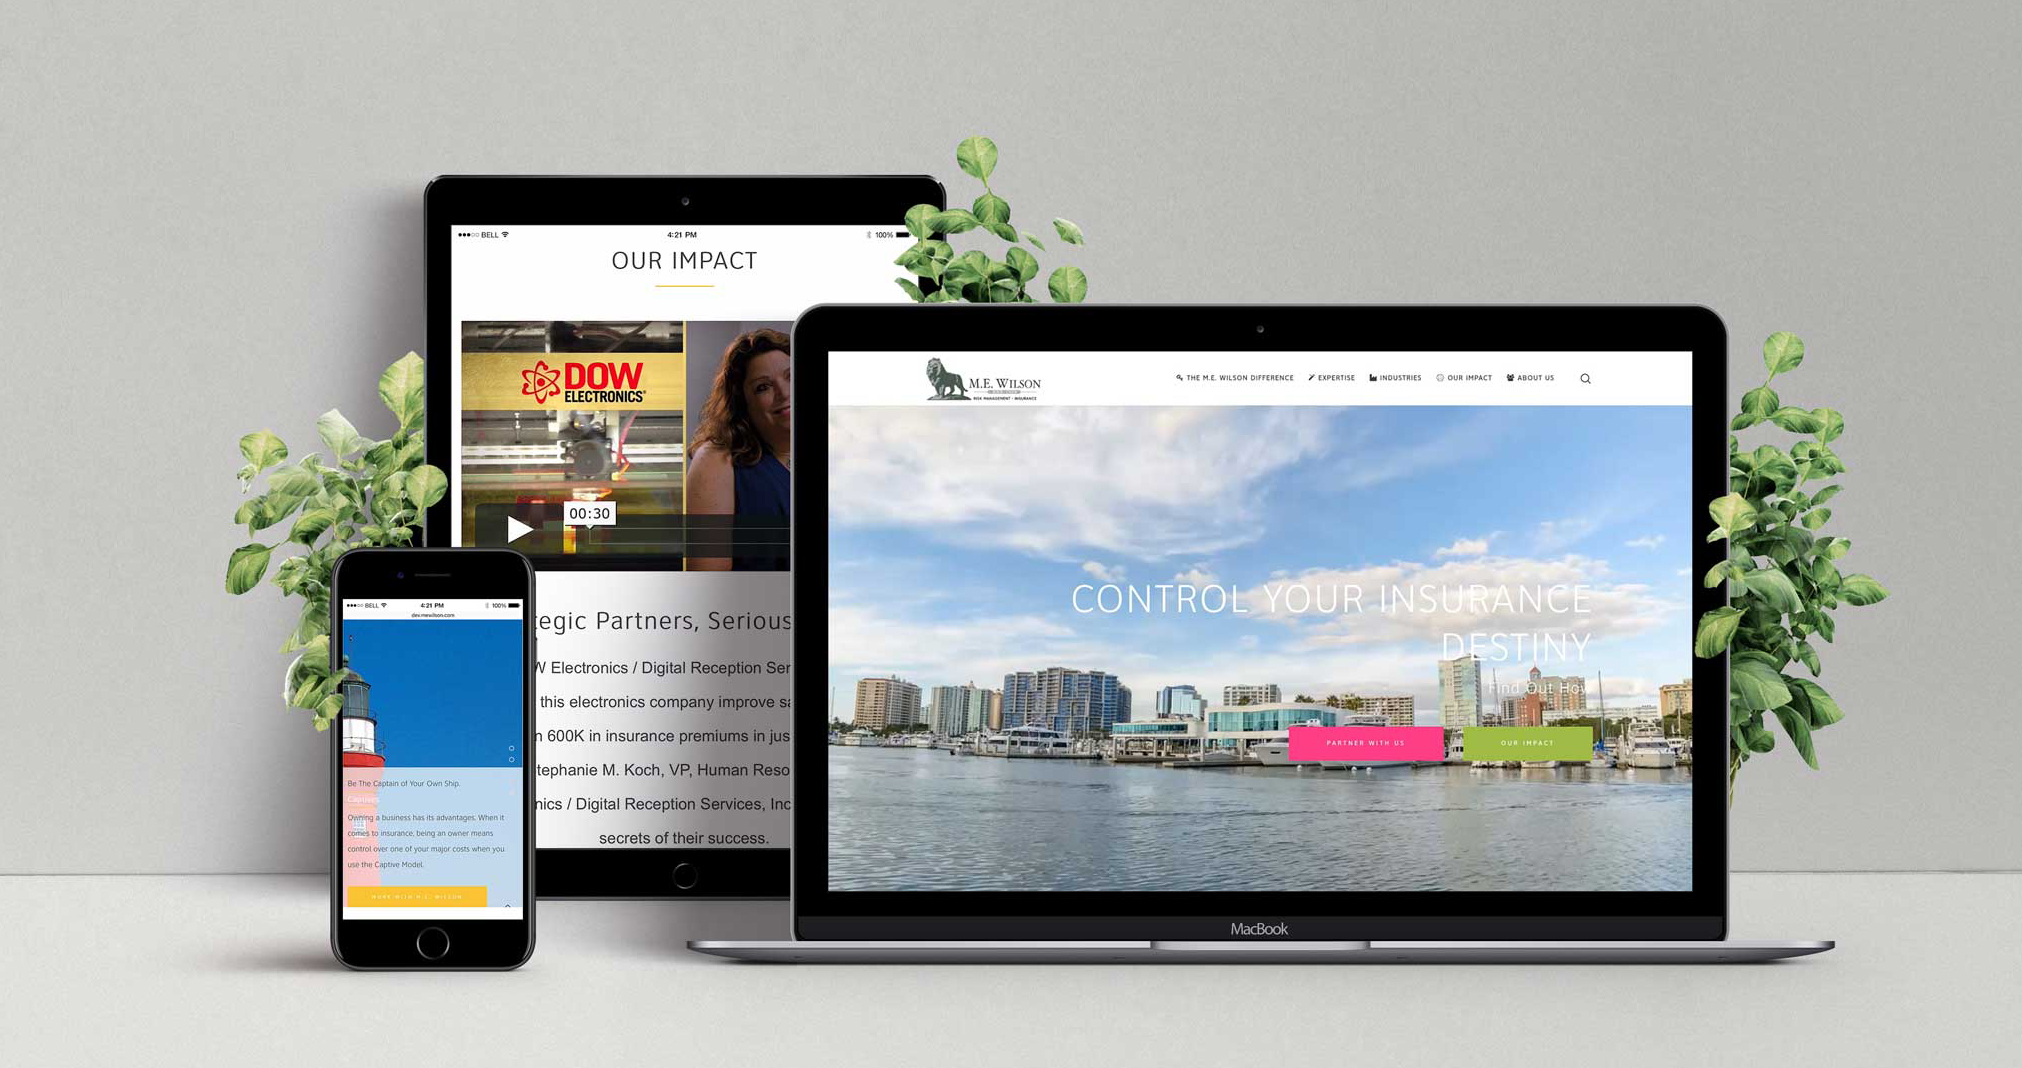 laptop, ipad, iphone show responsive website design